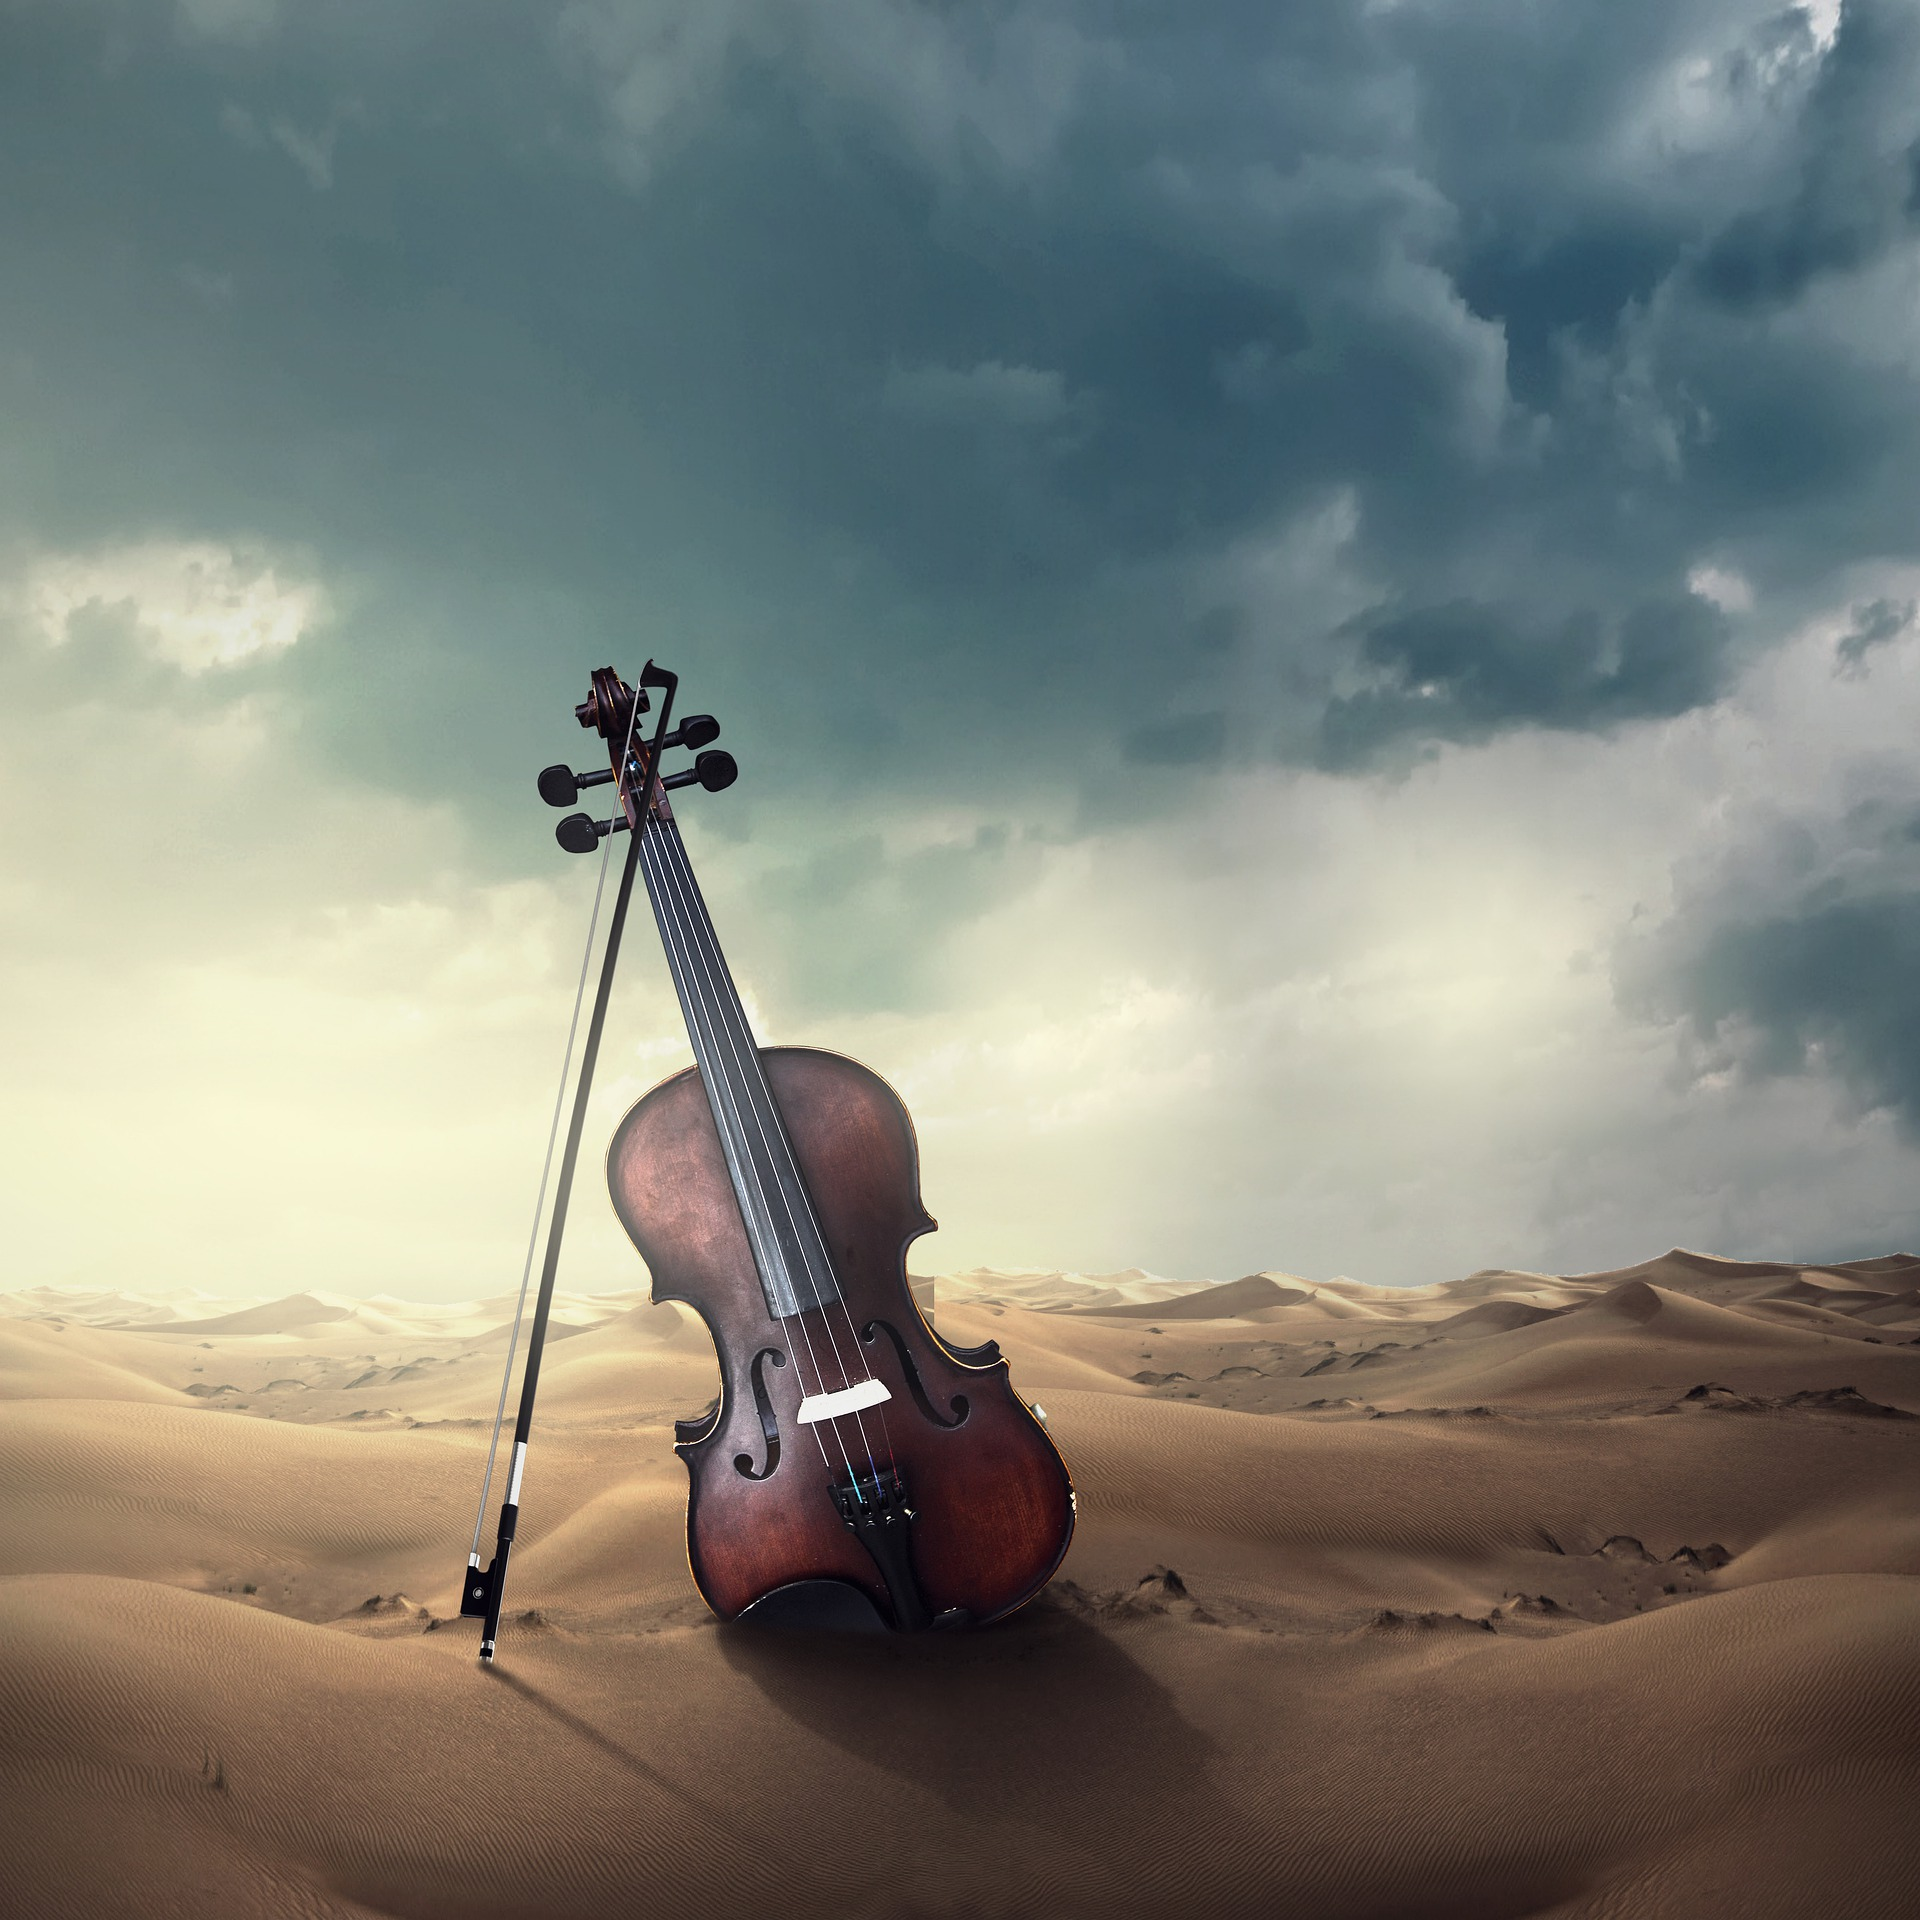 Online Beginner Fiddle Lessons Course - Fiddle Mastery From the Beginning